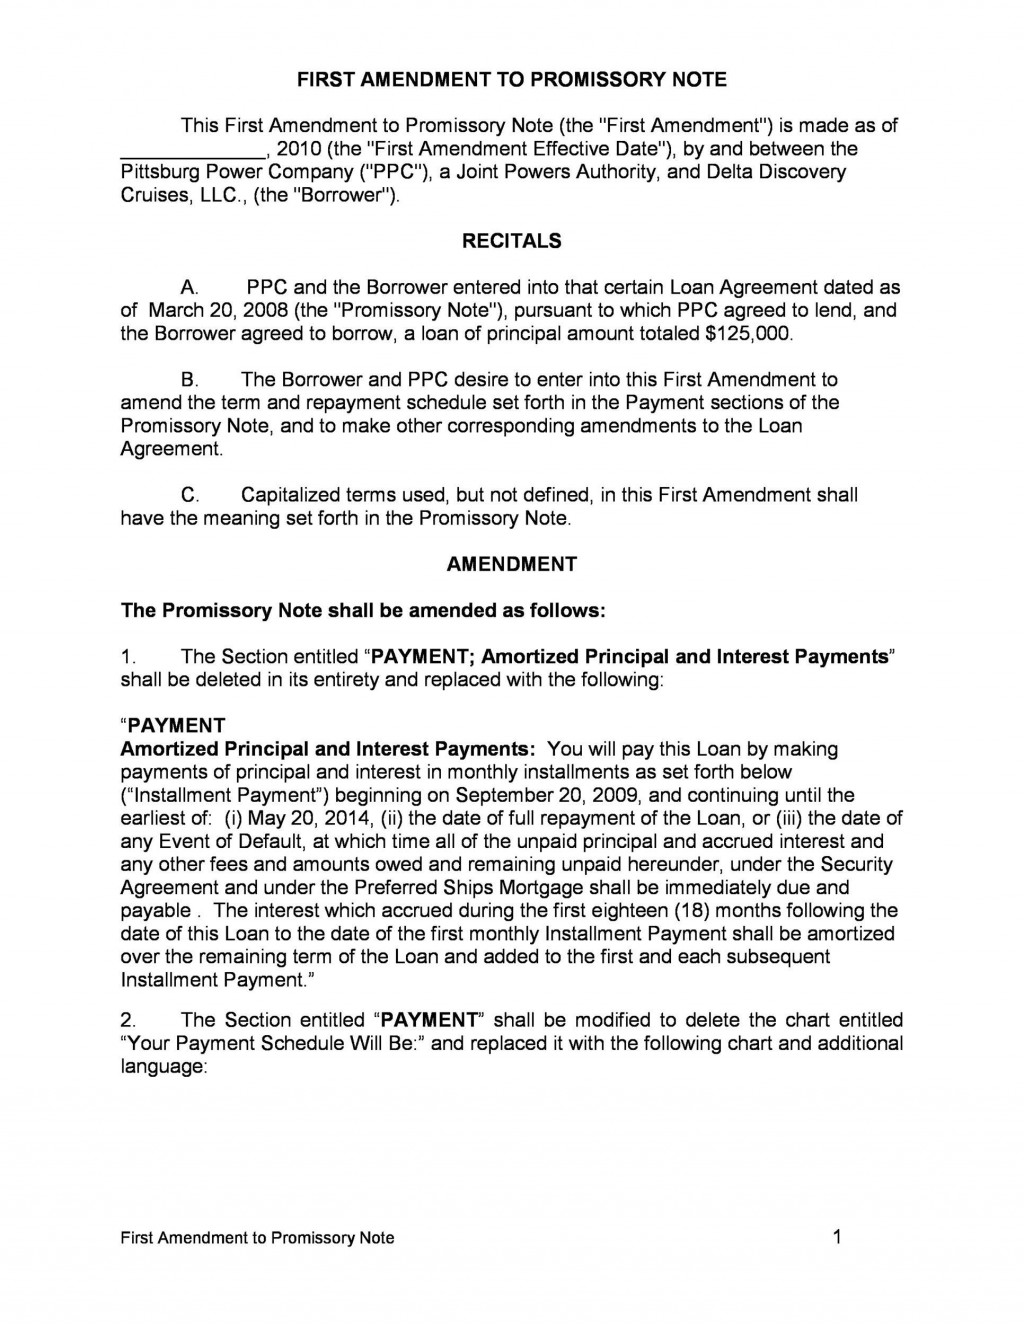 005 Magnificent Secured Promissory Note Template Design  Free Word Georgia CaliforniaLarge